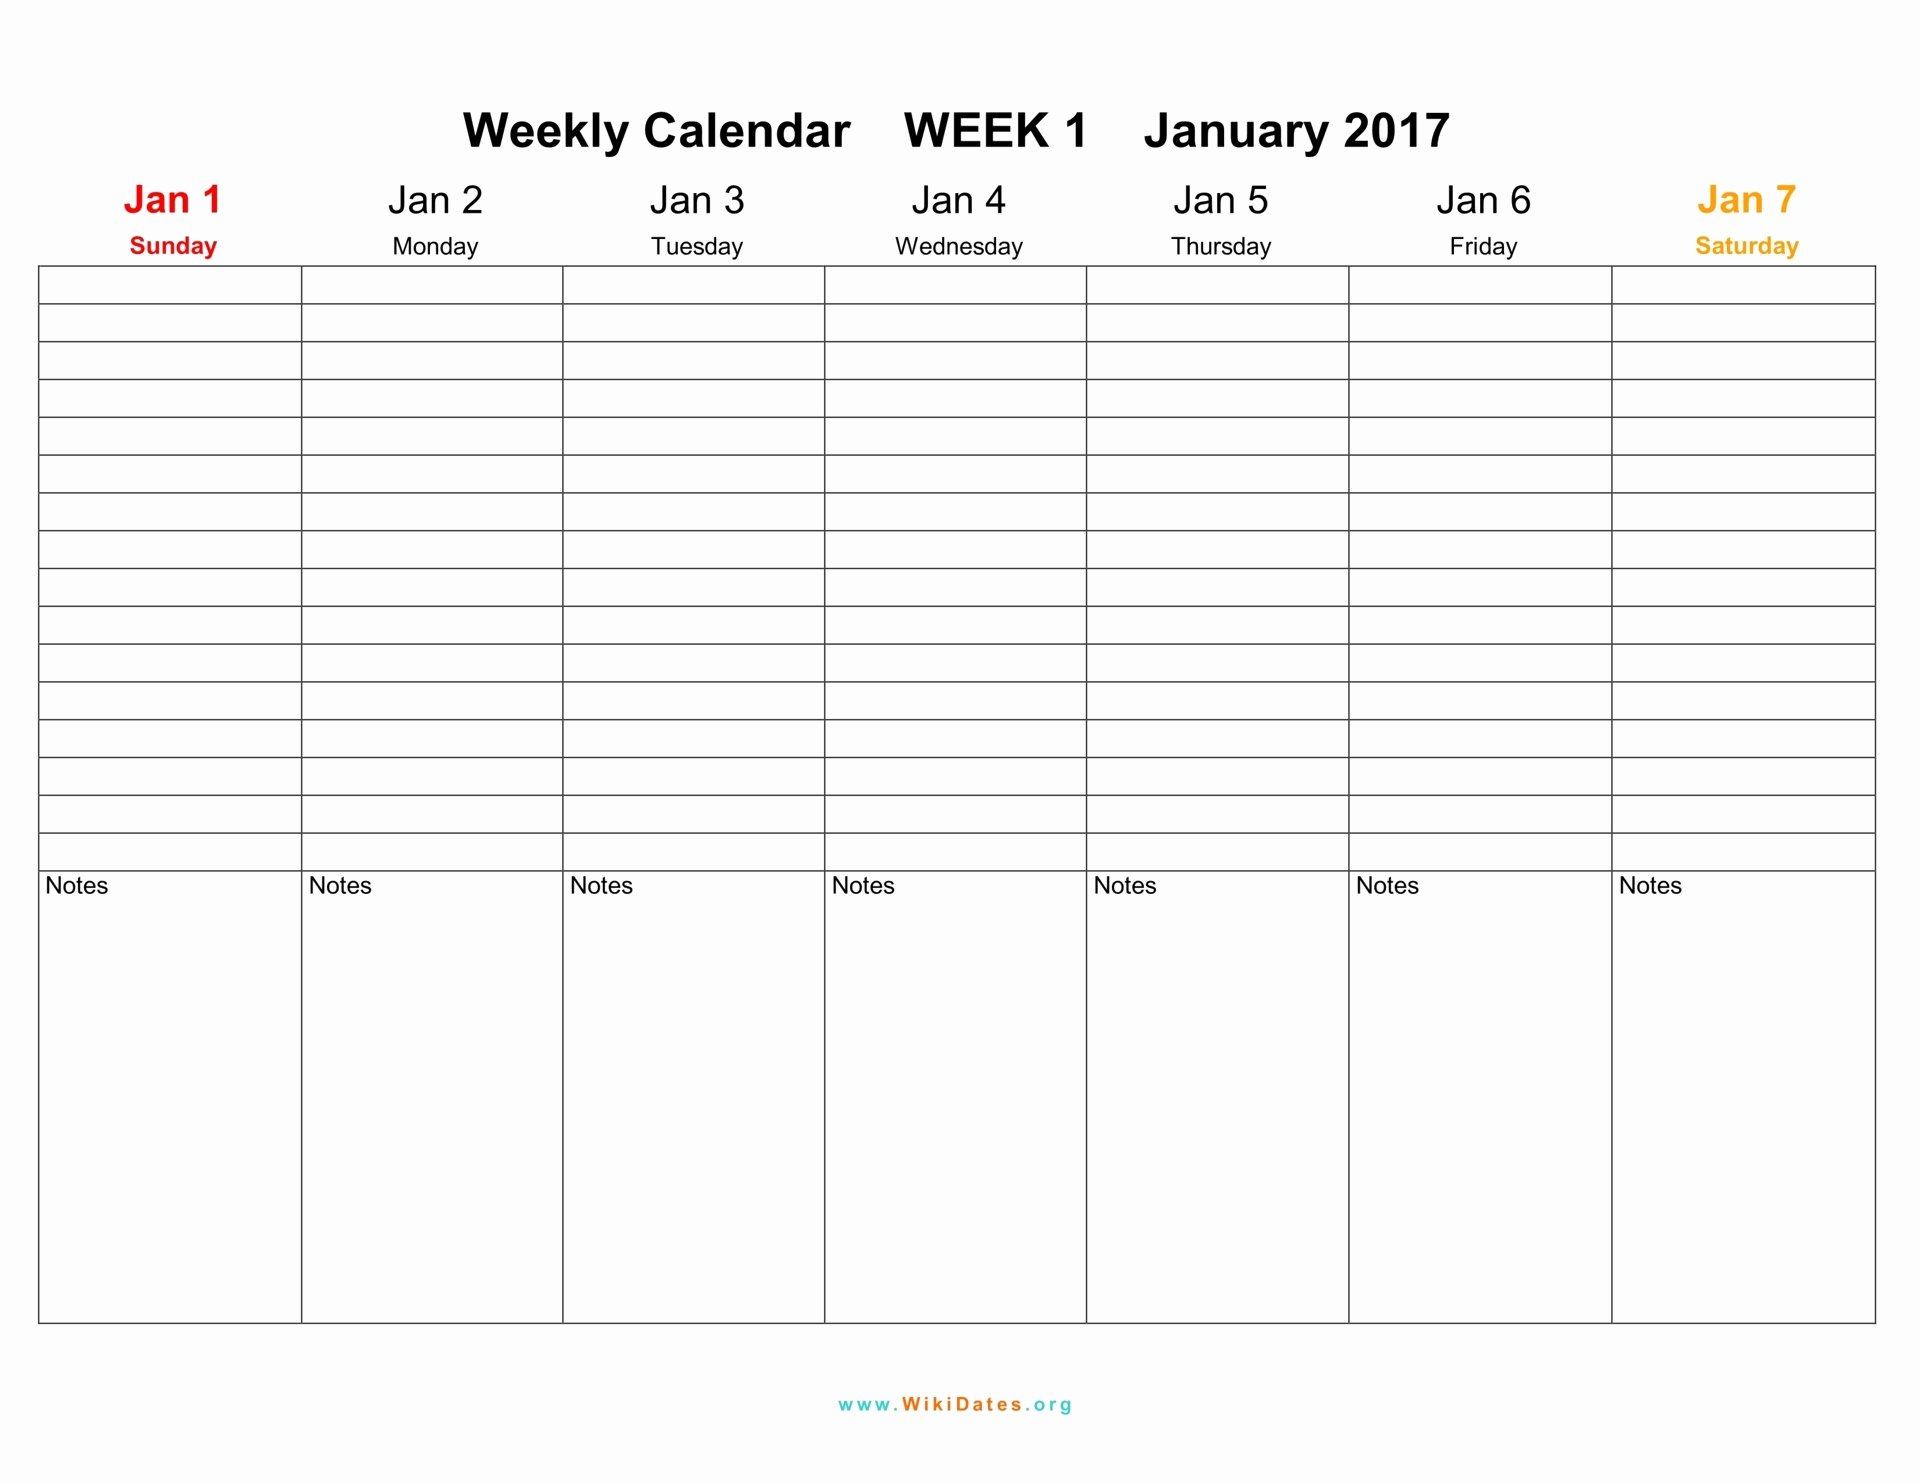 Weekly Calendar Template 2017 Beautiful Weekly Calendar Download Weekly Calendar 2017 and 2018